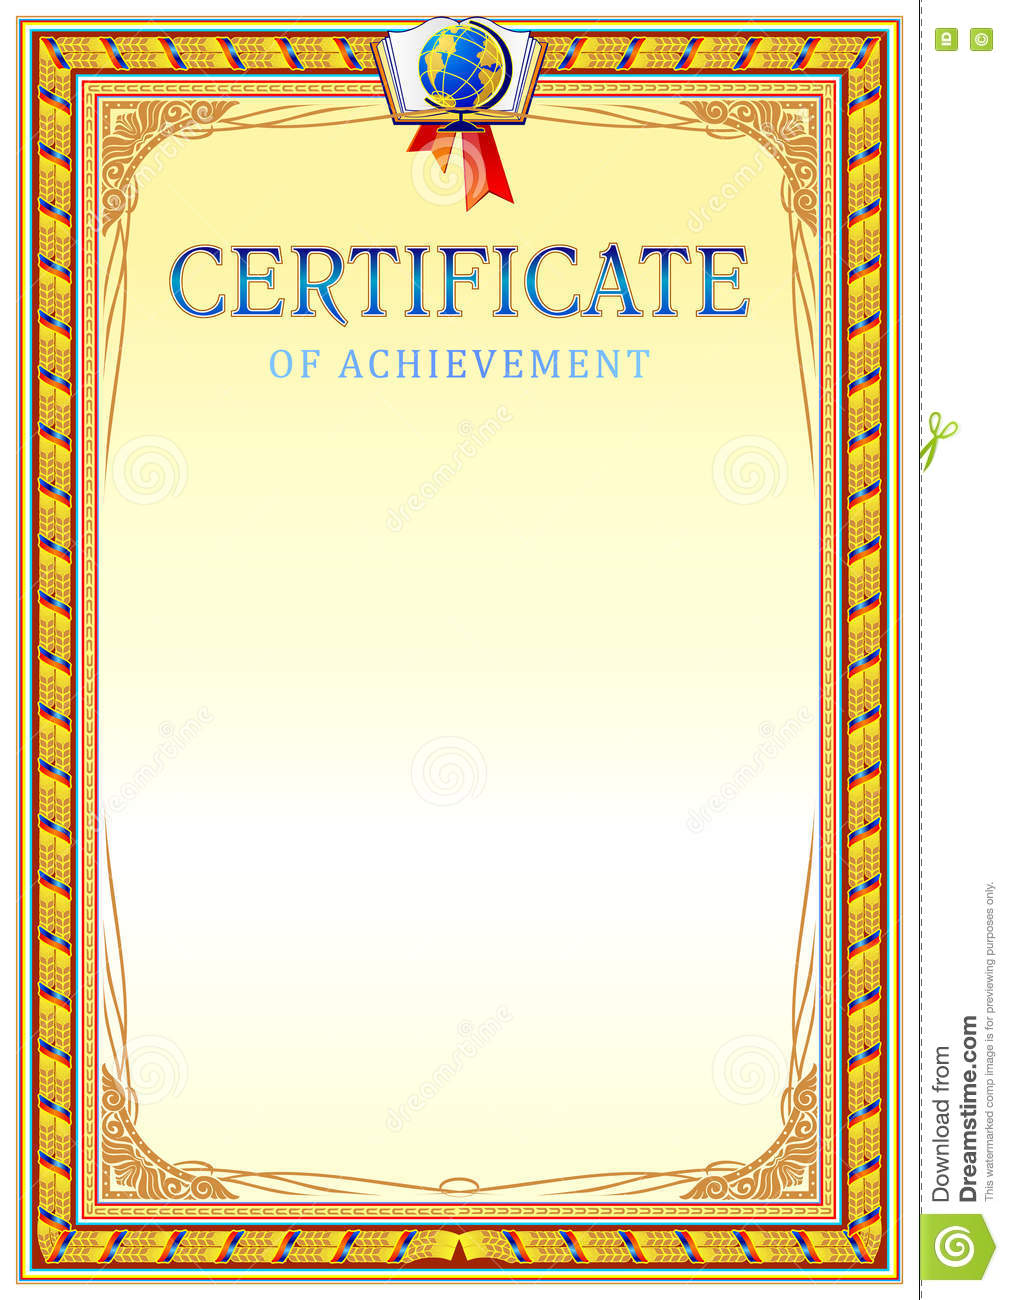 certificate design template stock vector illustration of